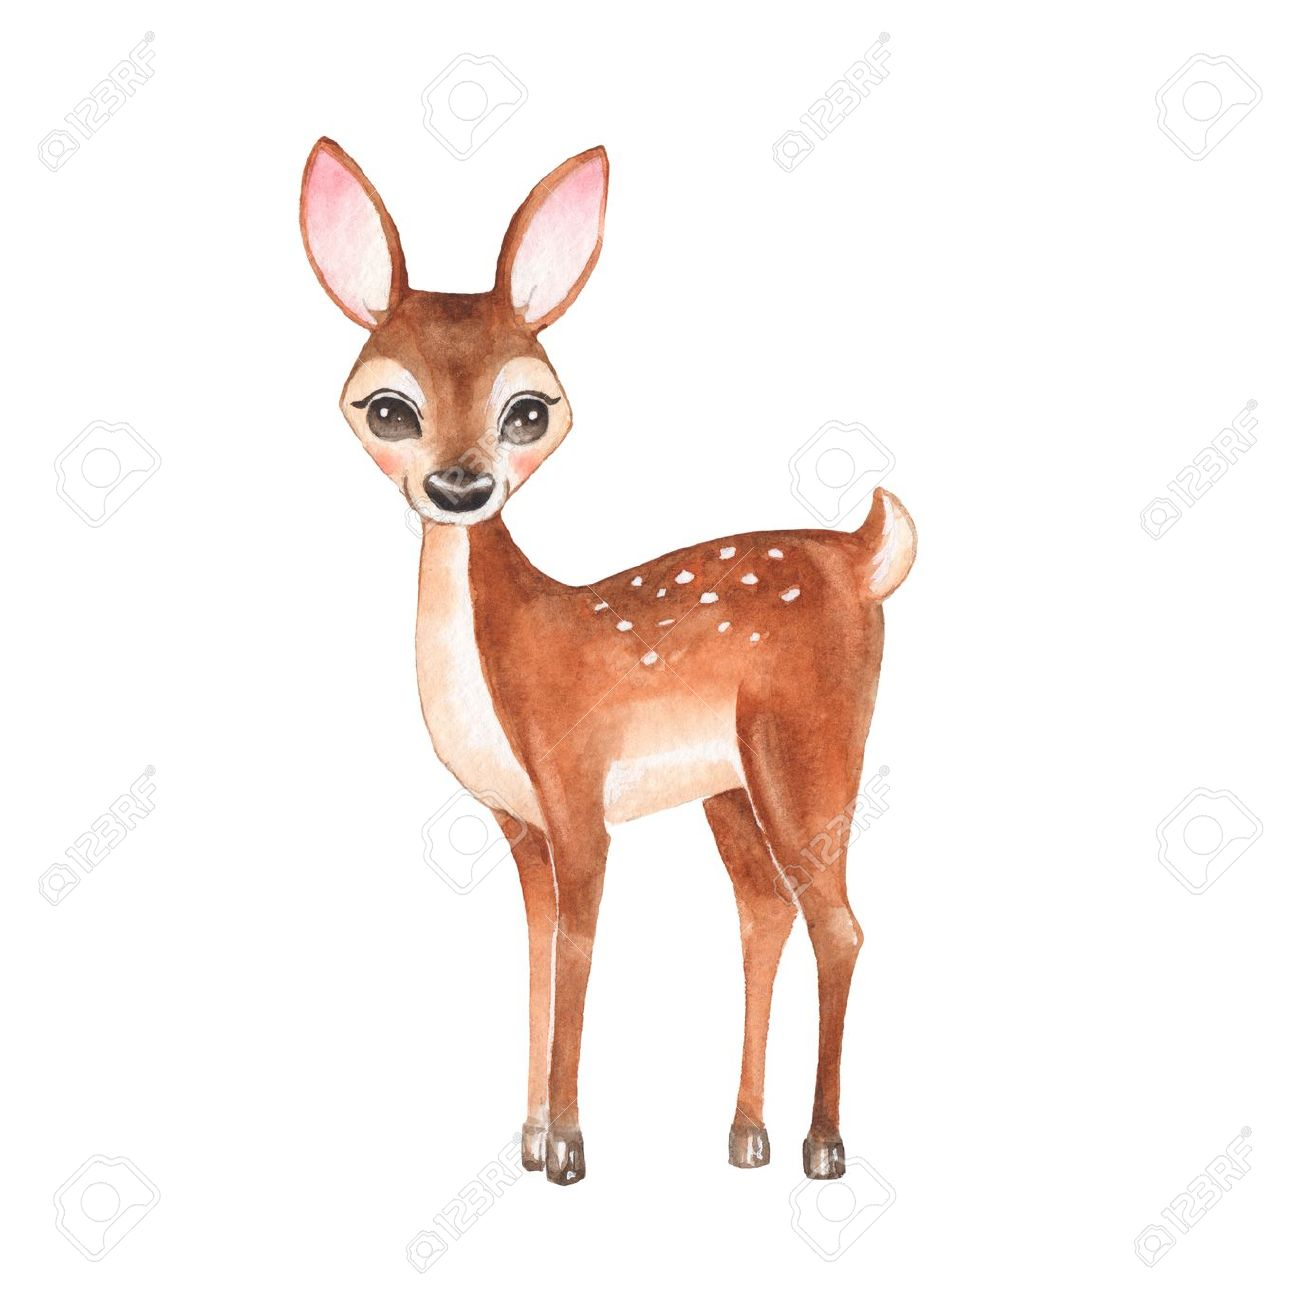 Baby Deer. Hand drawn cute deer. Cartoon illustration, isolated on white. Watercolor painting - 64237751